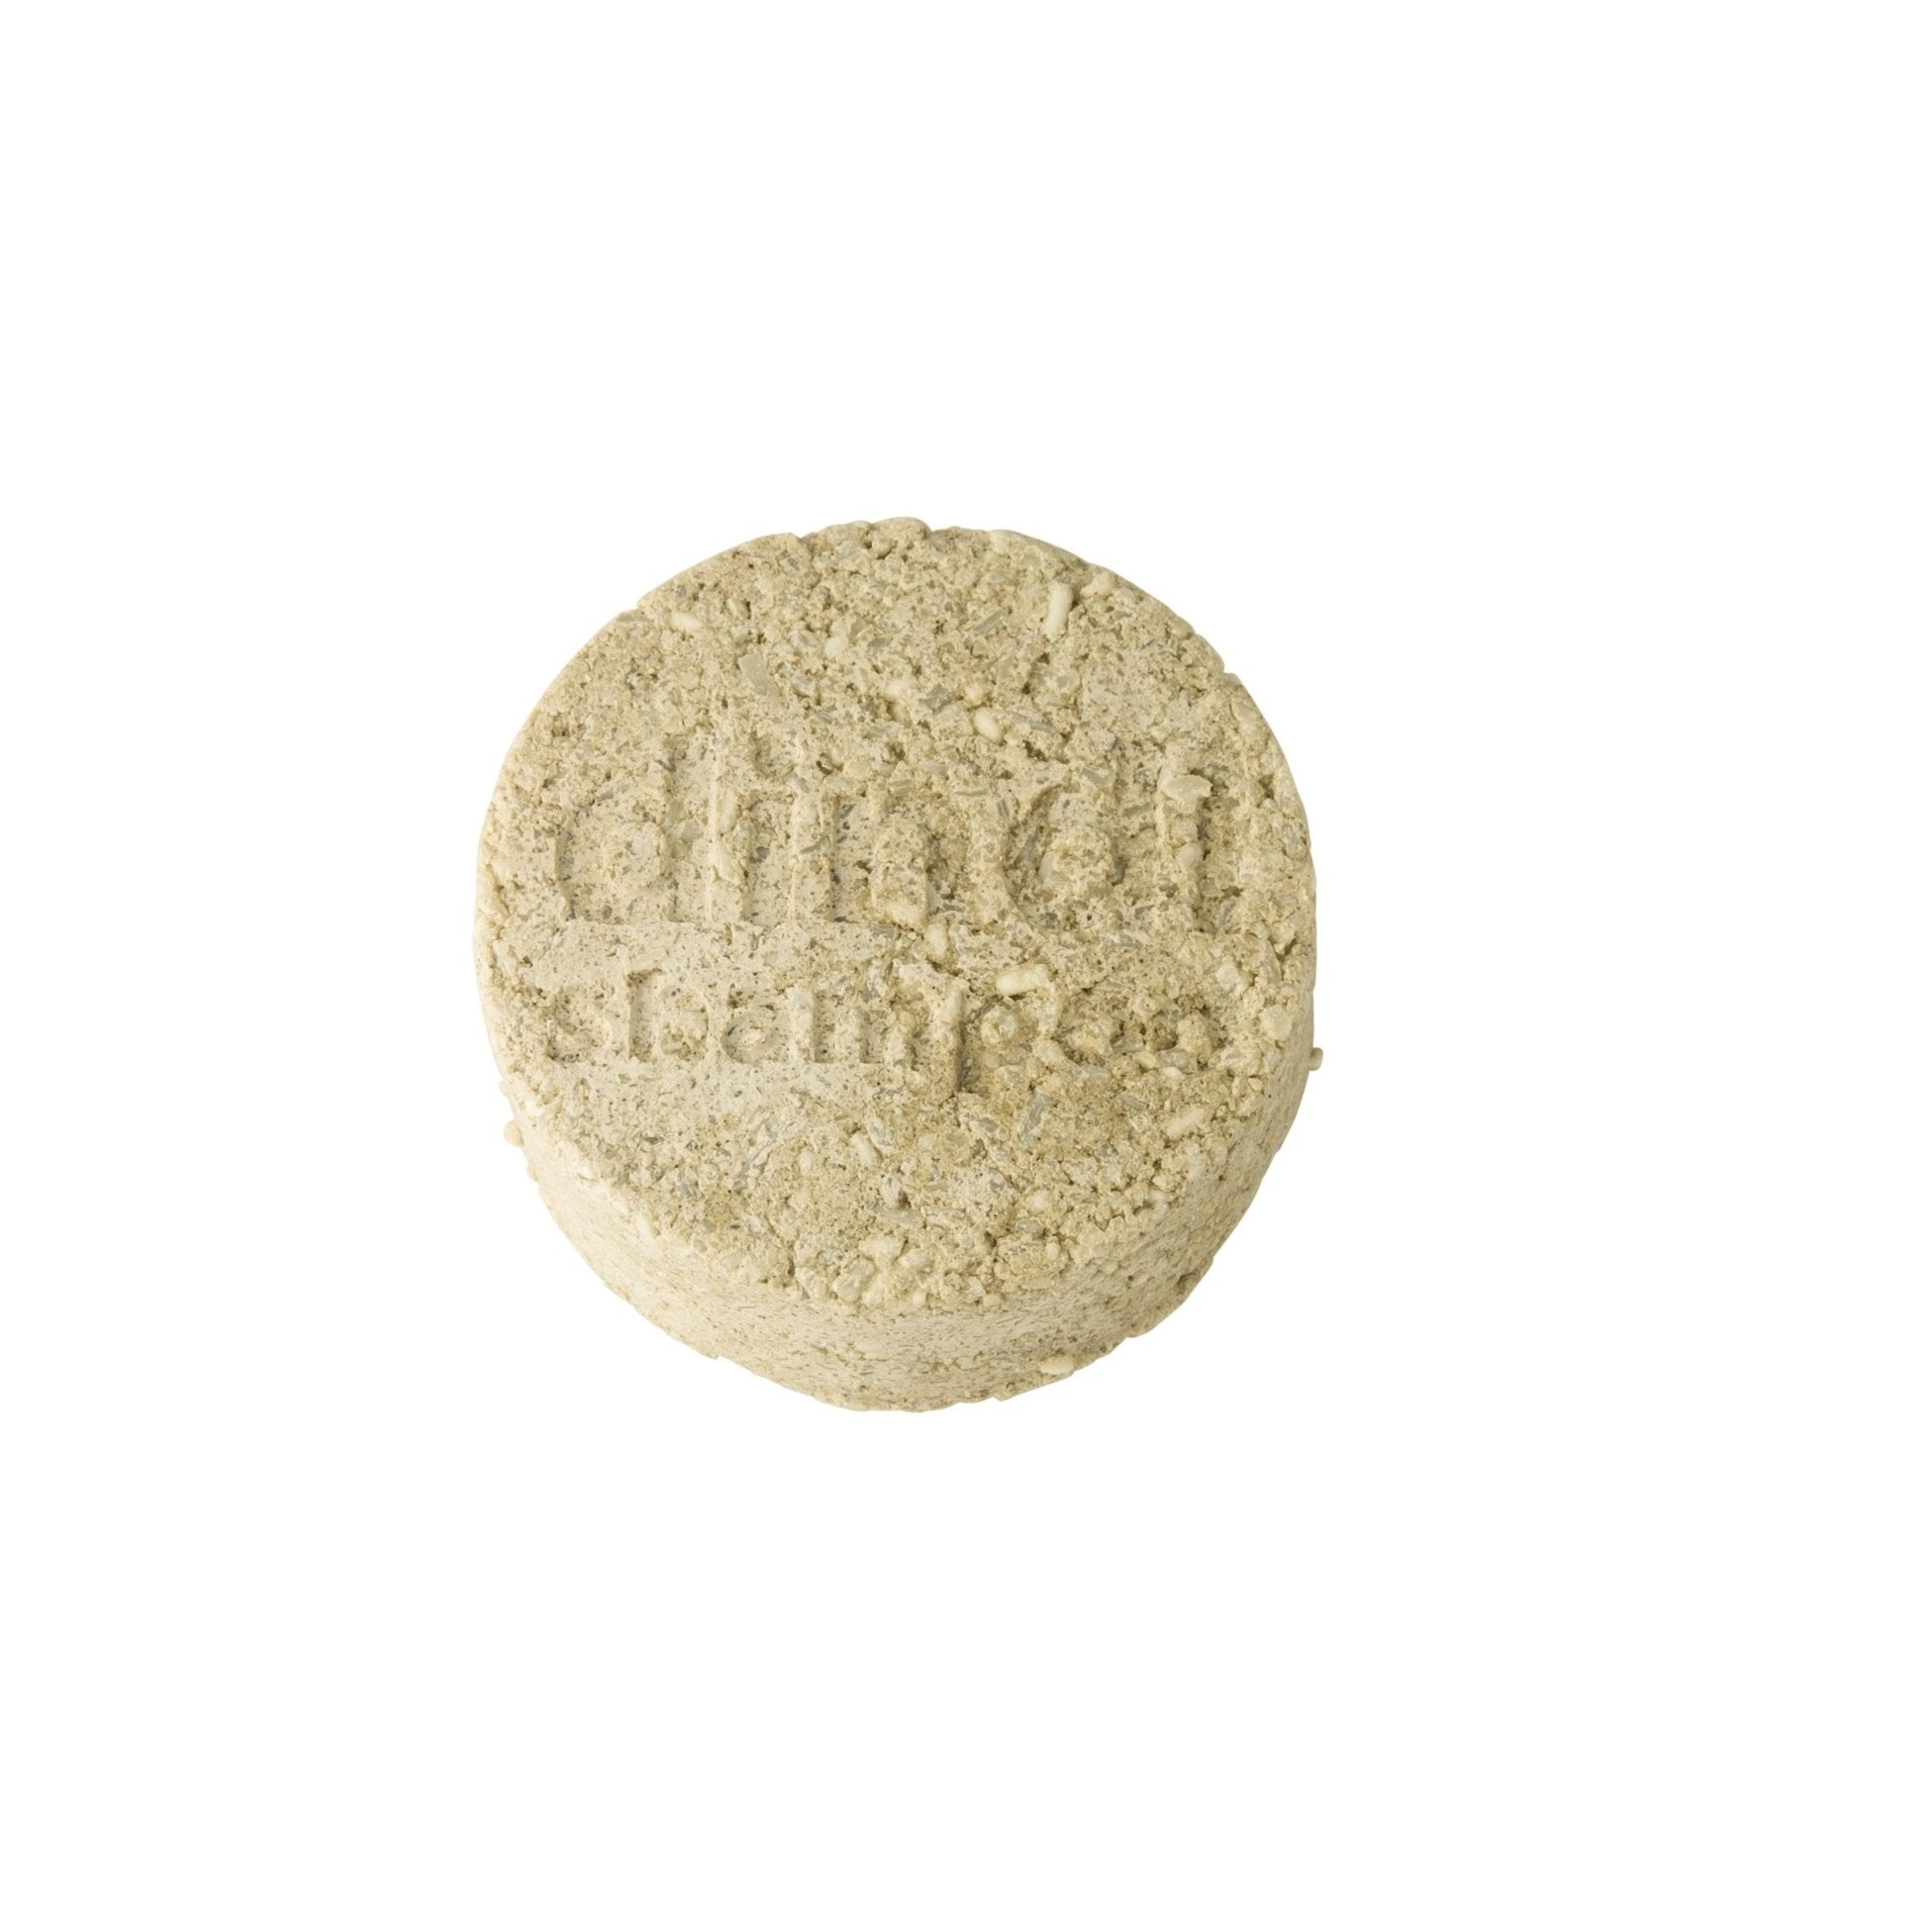 ph shampoo bar 50g - sea moss